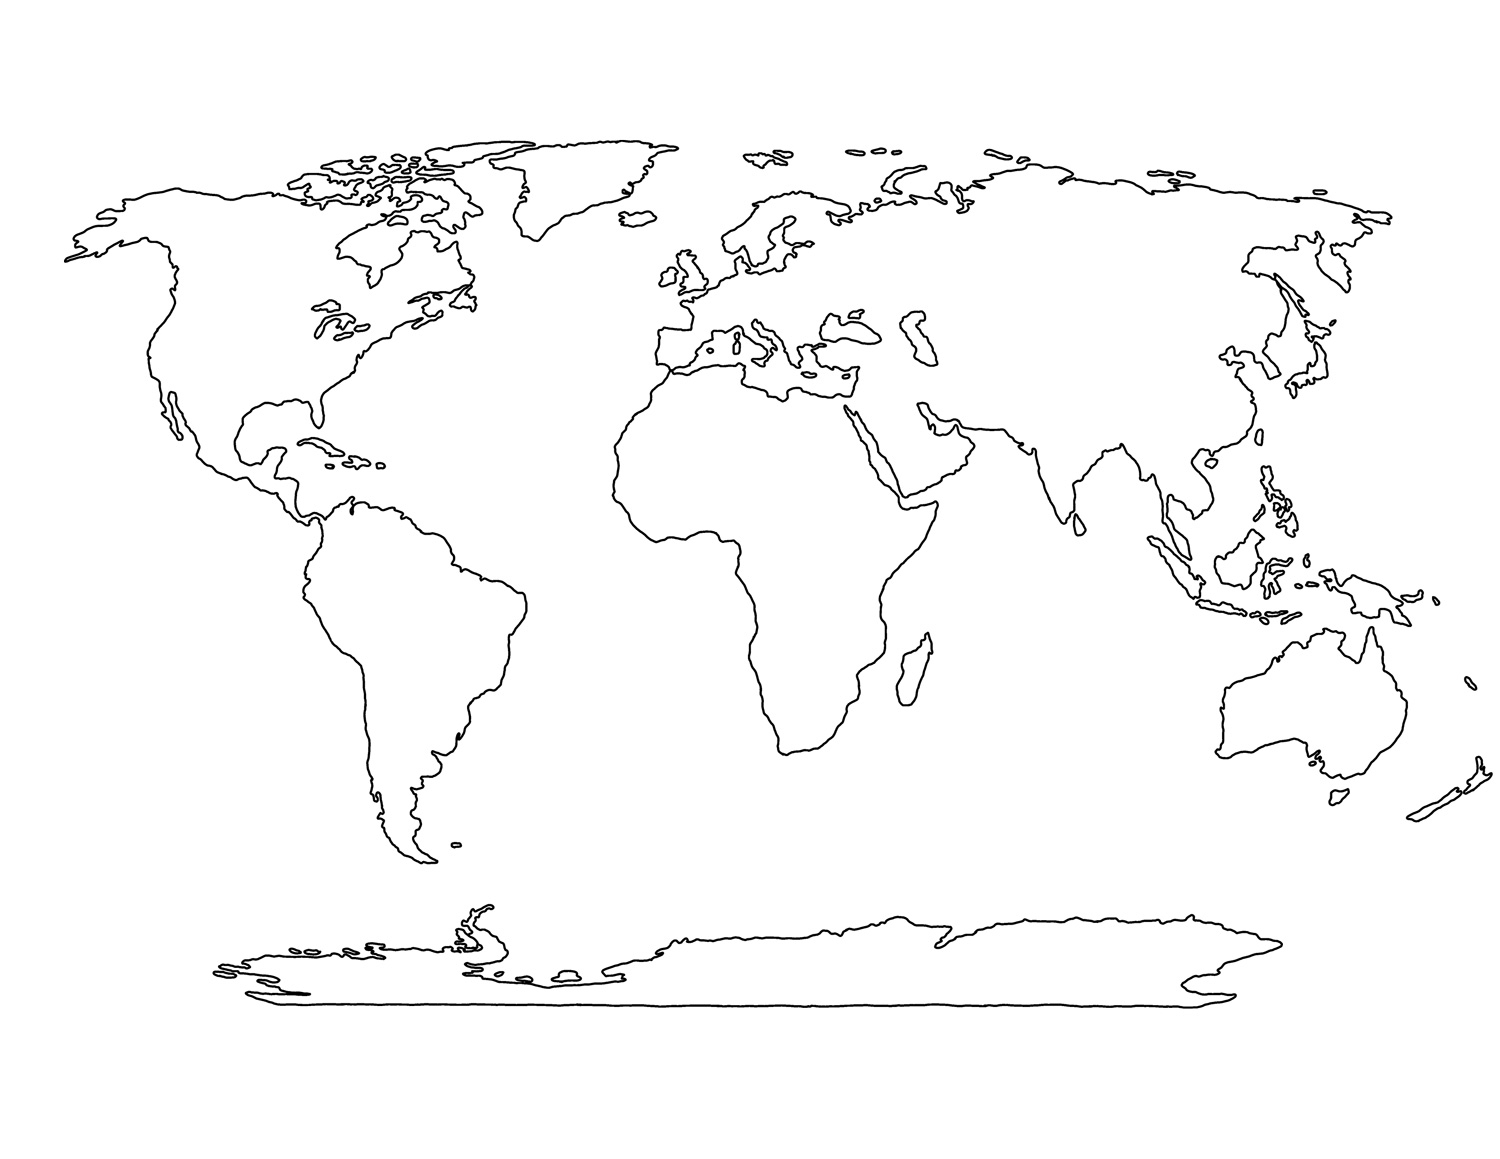 Clipart black and white countries world clipground free royalty silhouette white of pictures with black images globe education world map gumiabroncs Images